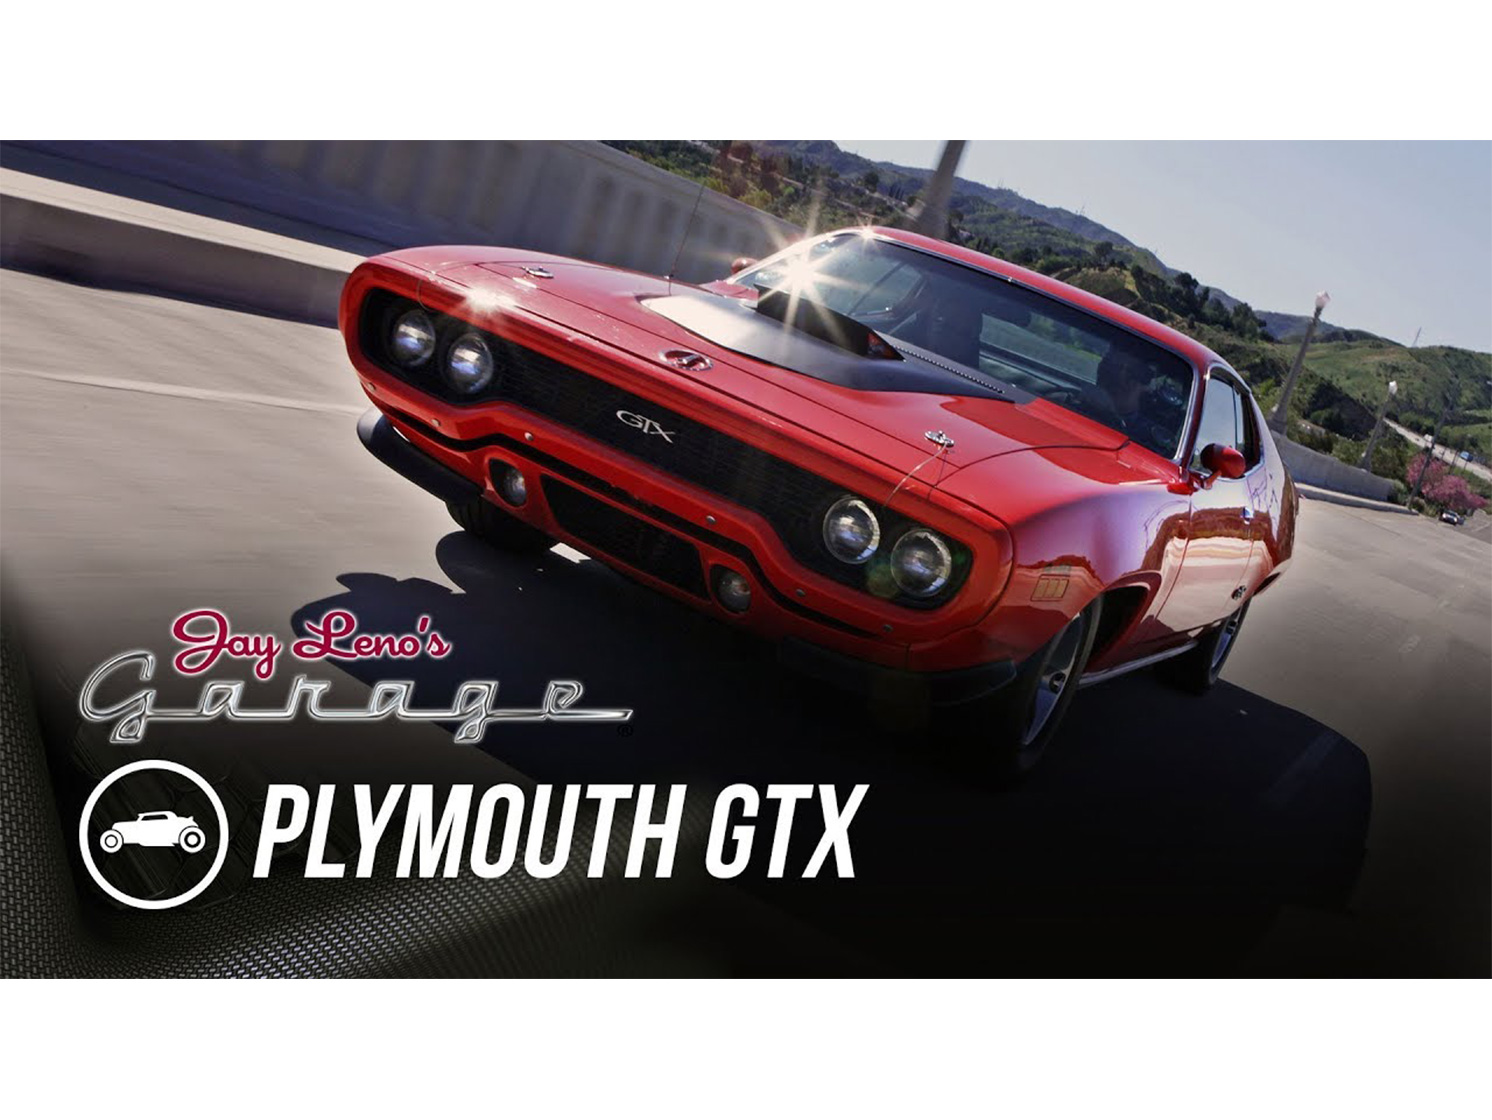 Jay Leno gets philosophical in a 1971 Plymouth GTX thumbnail